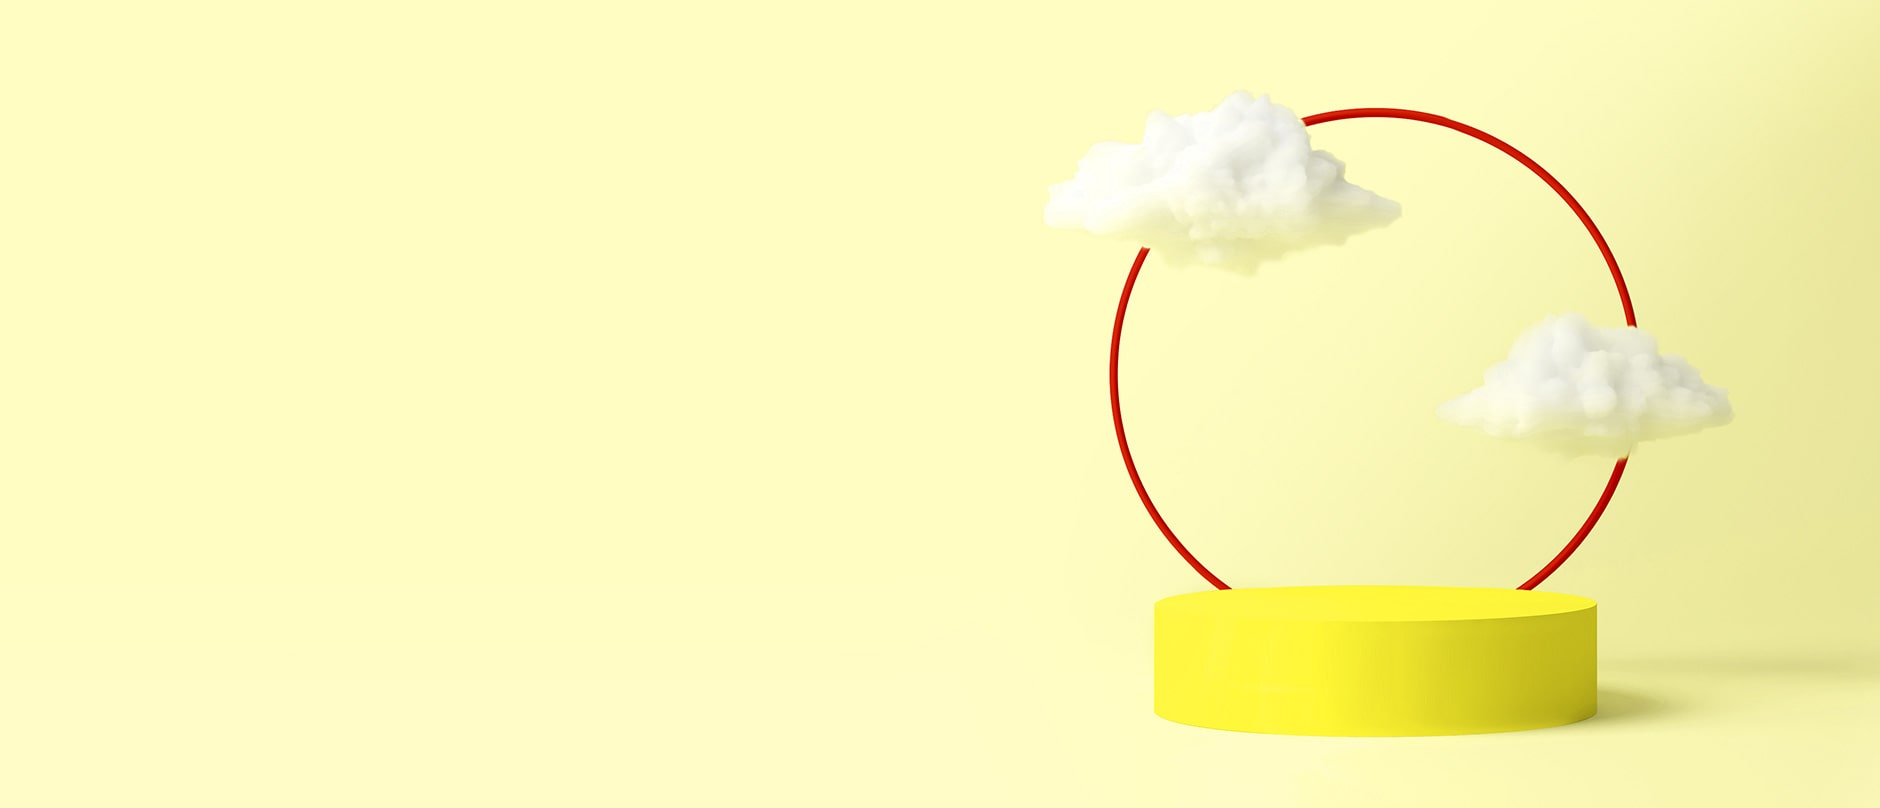 red circle on a white stand on yellow background with two fluffy clouds